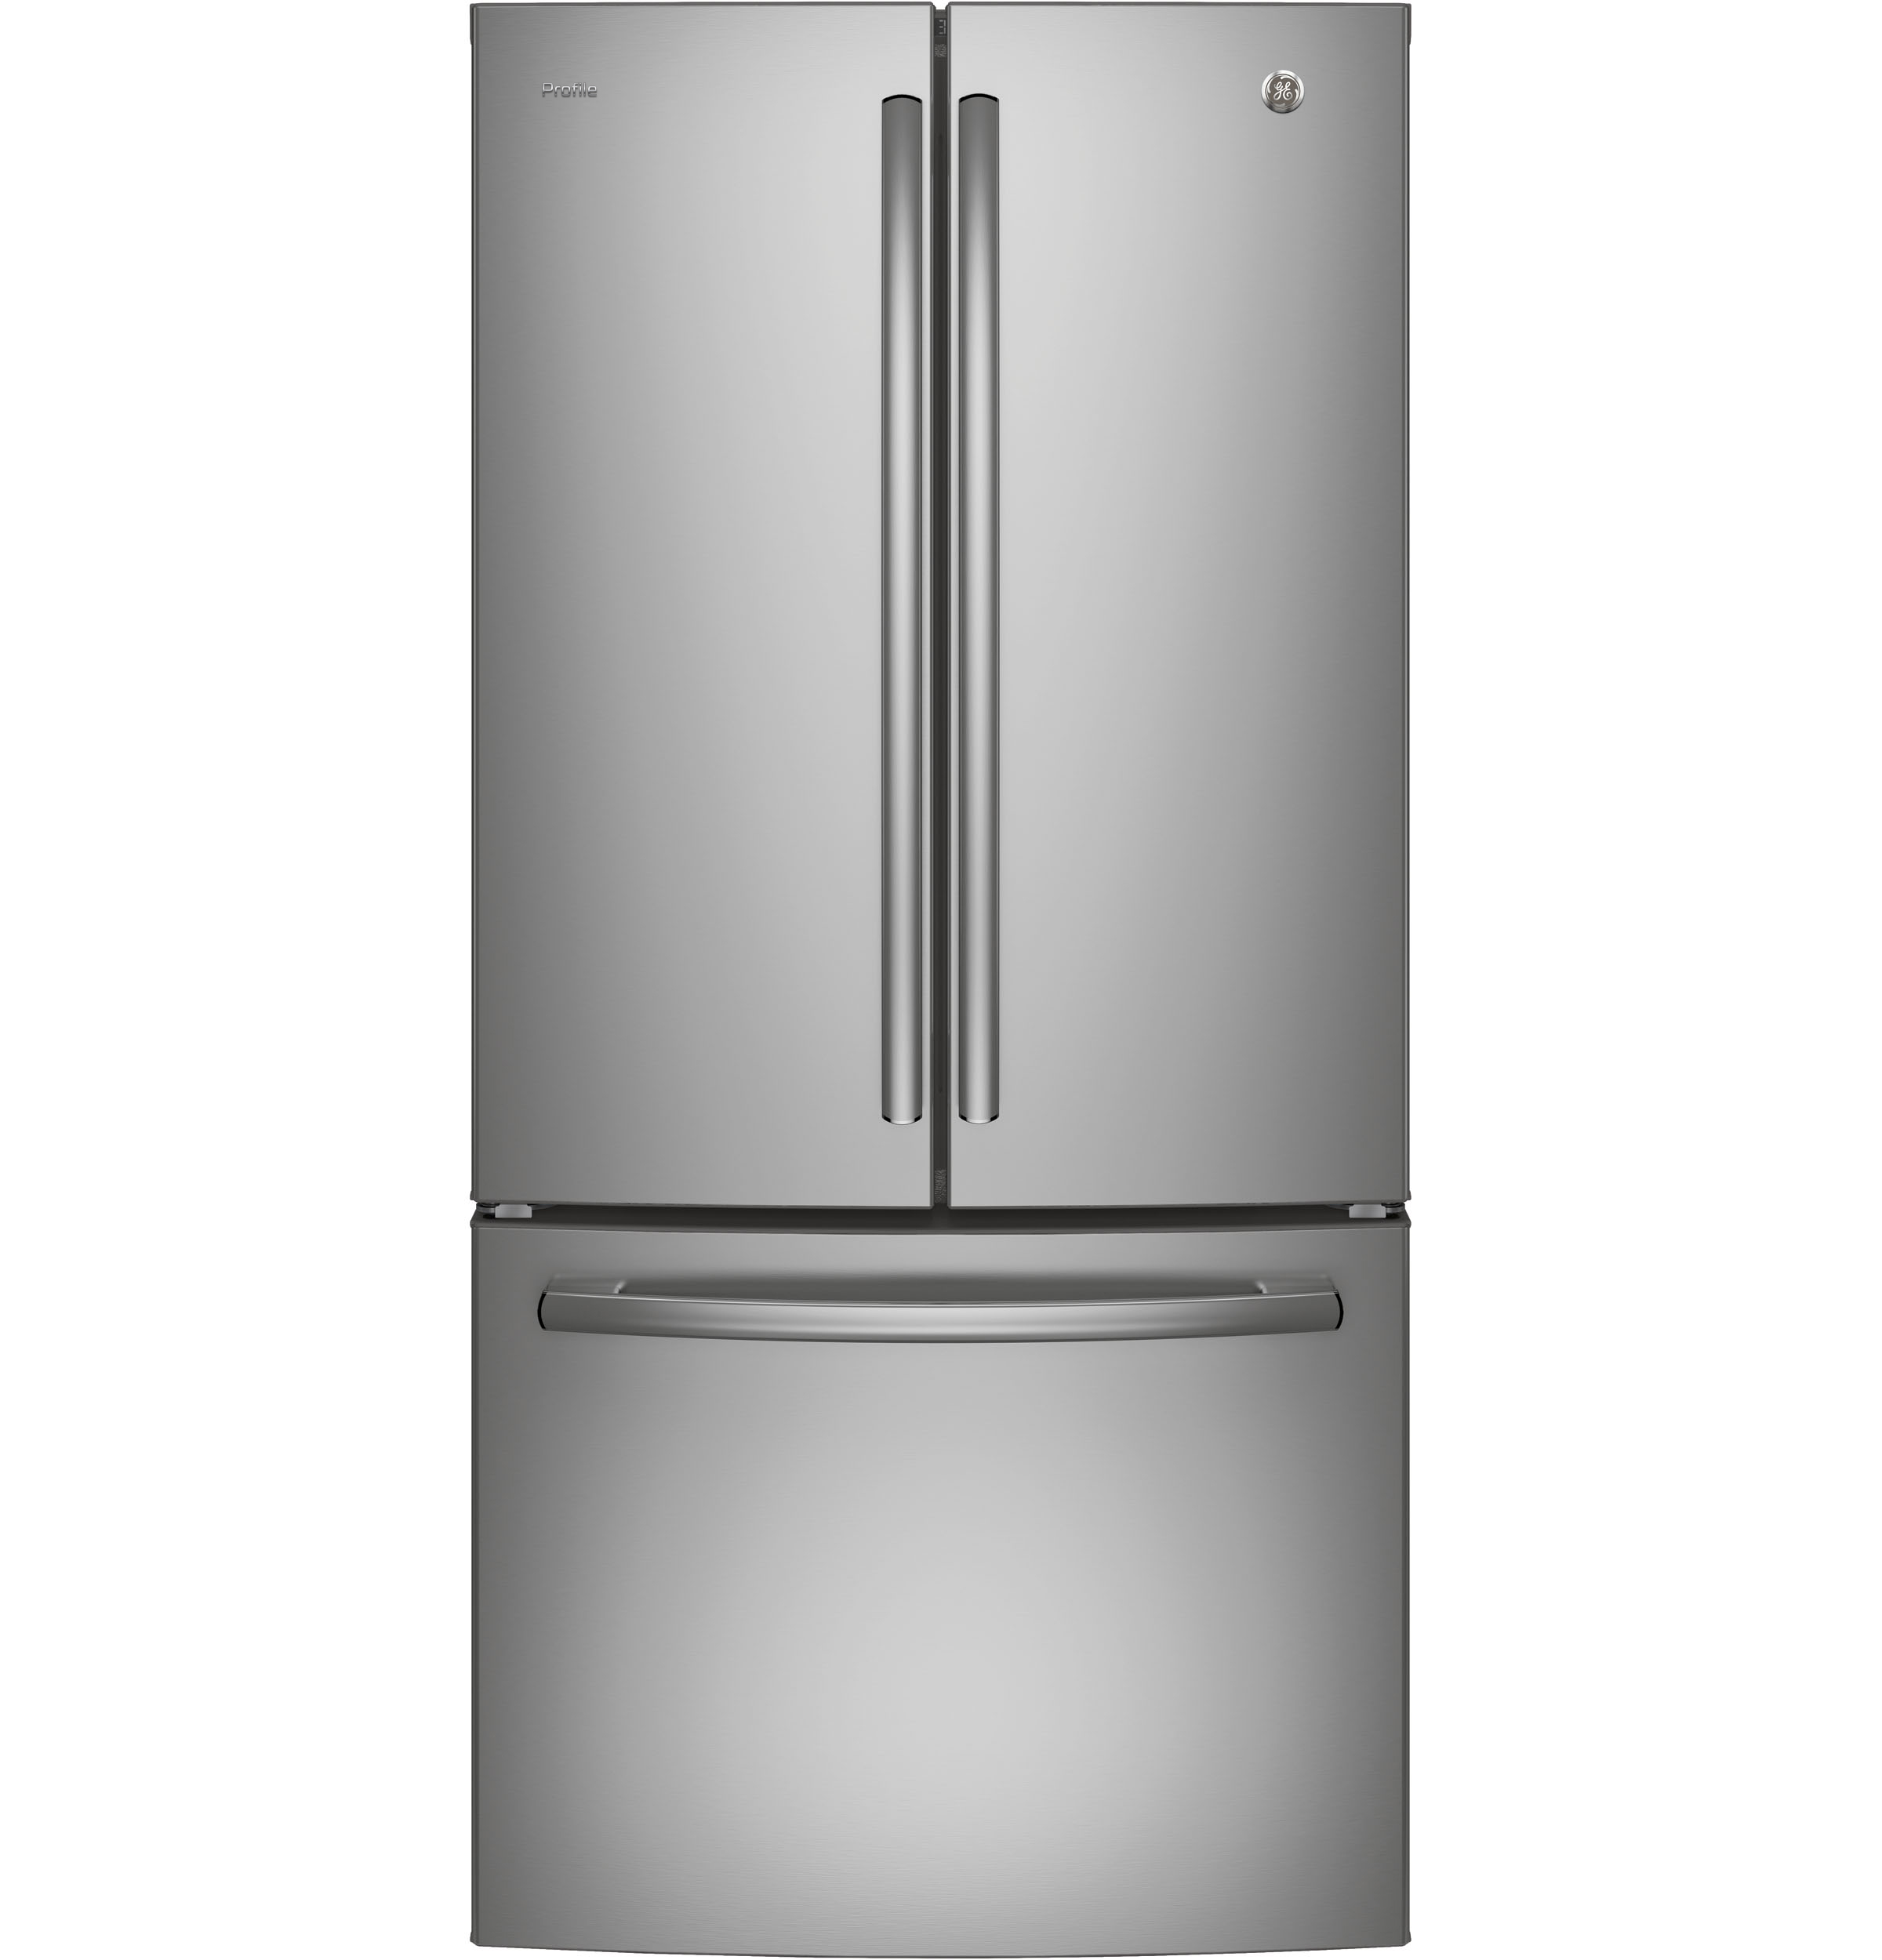 GE Profile Refrigerator 30 PNE25N in Stainless Steel color showcased by Corbeil Electro Store